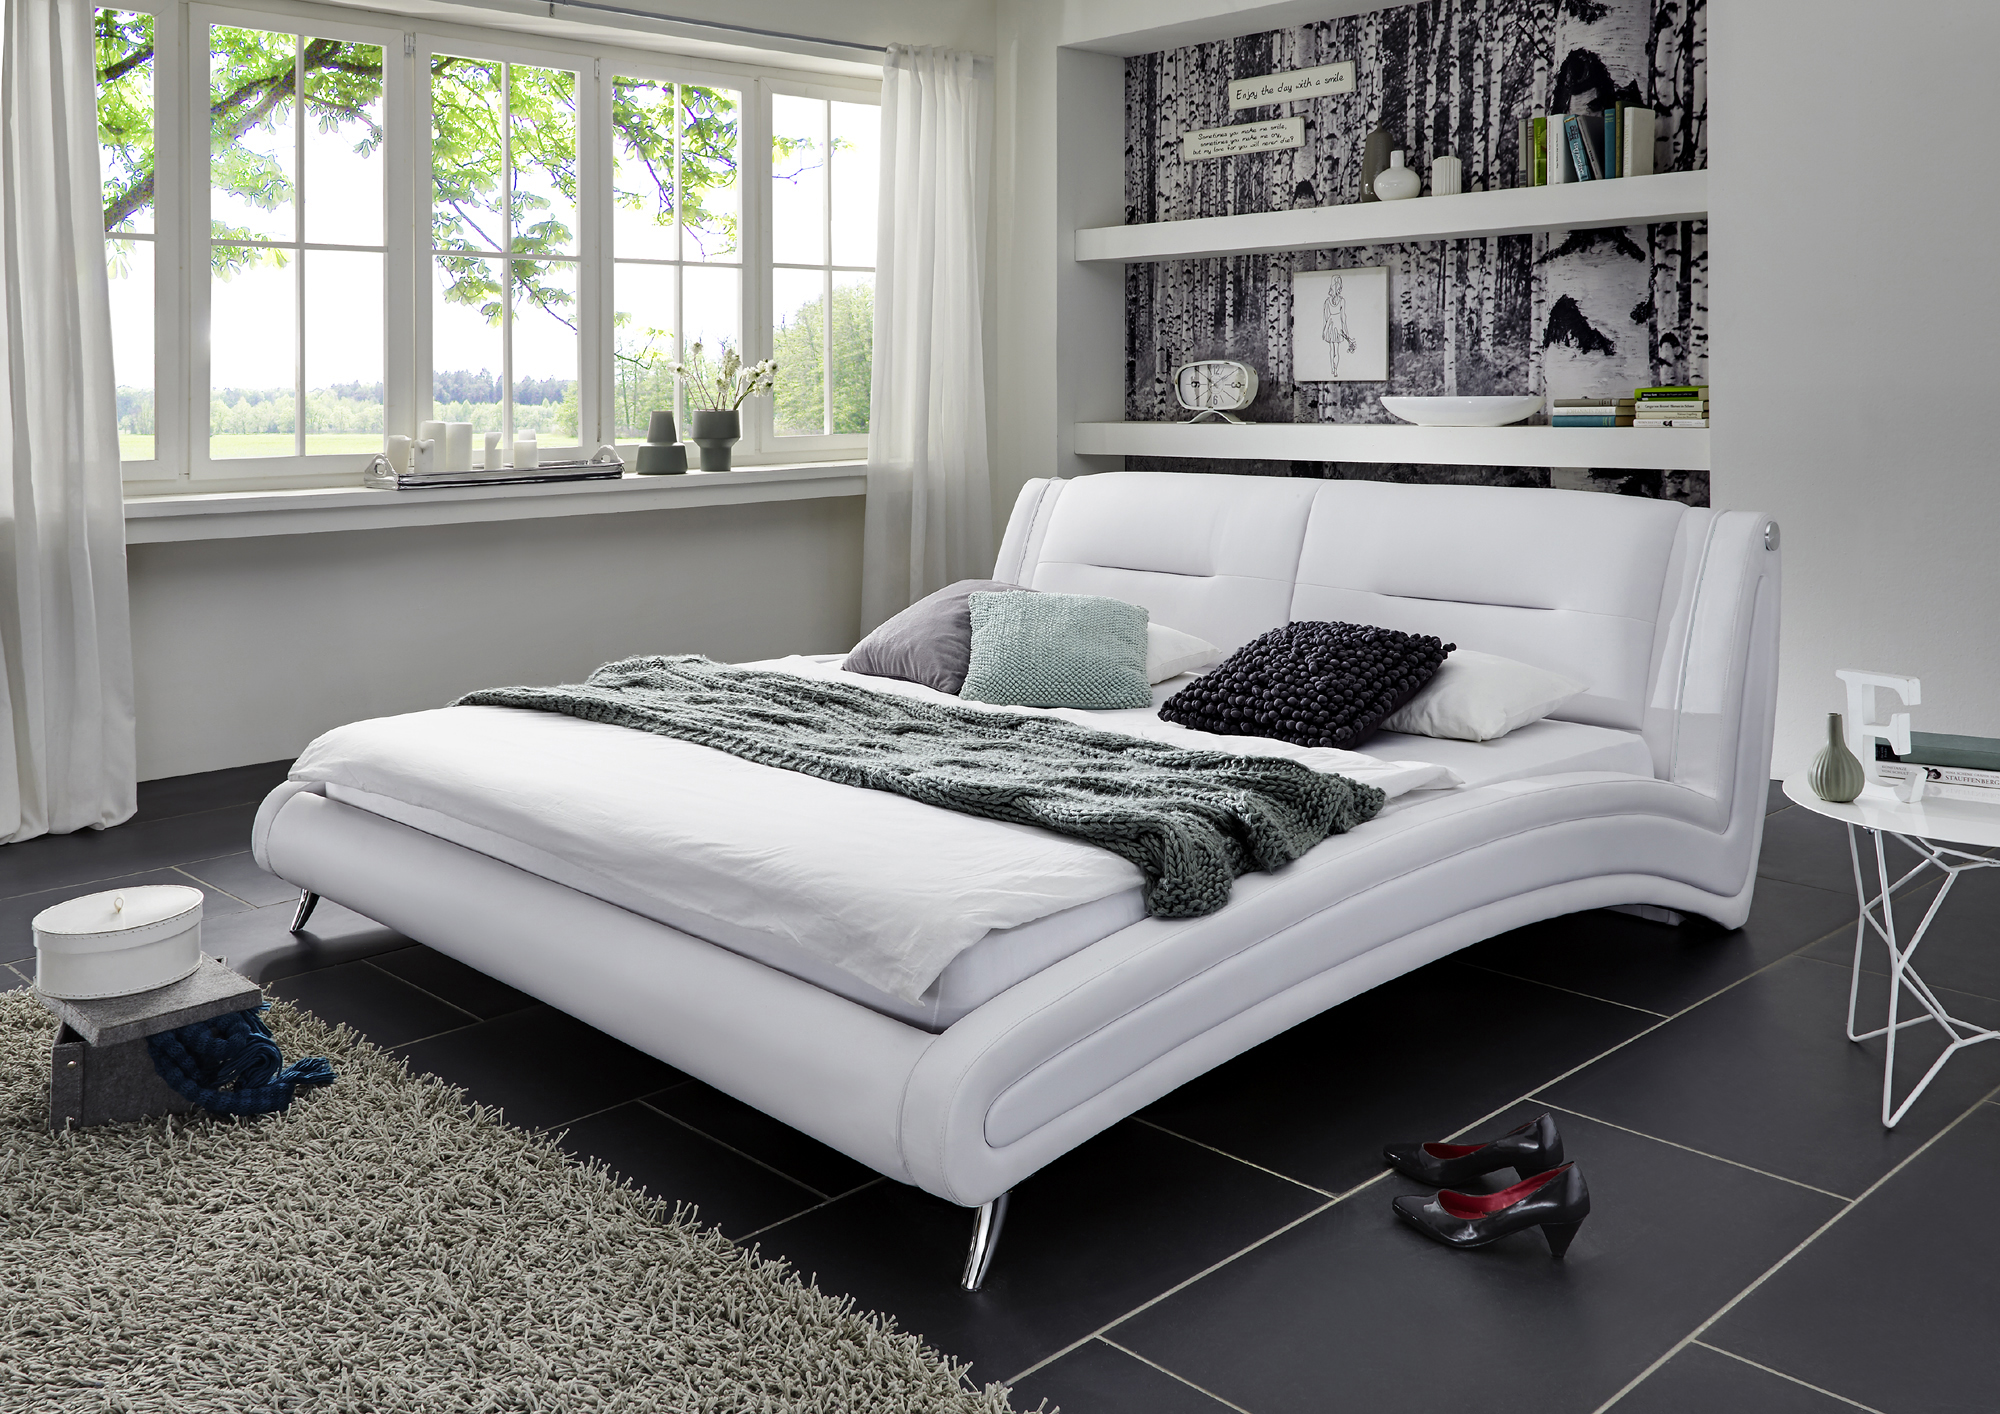 sam polsterbett doppelbett 140 x 200 cm wei swing. Black Bedroom Furniture Sets. Home Design Ideas